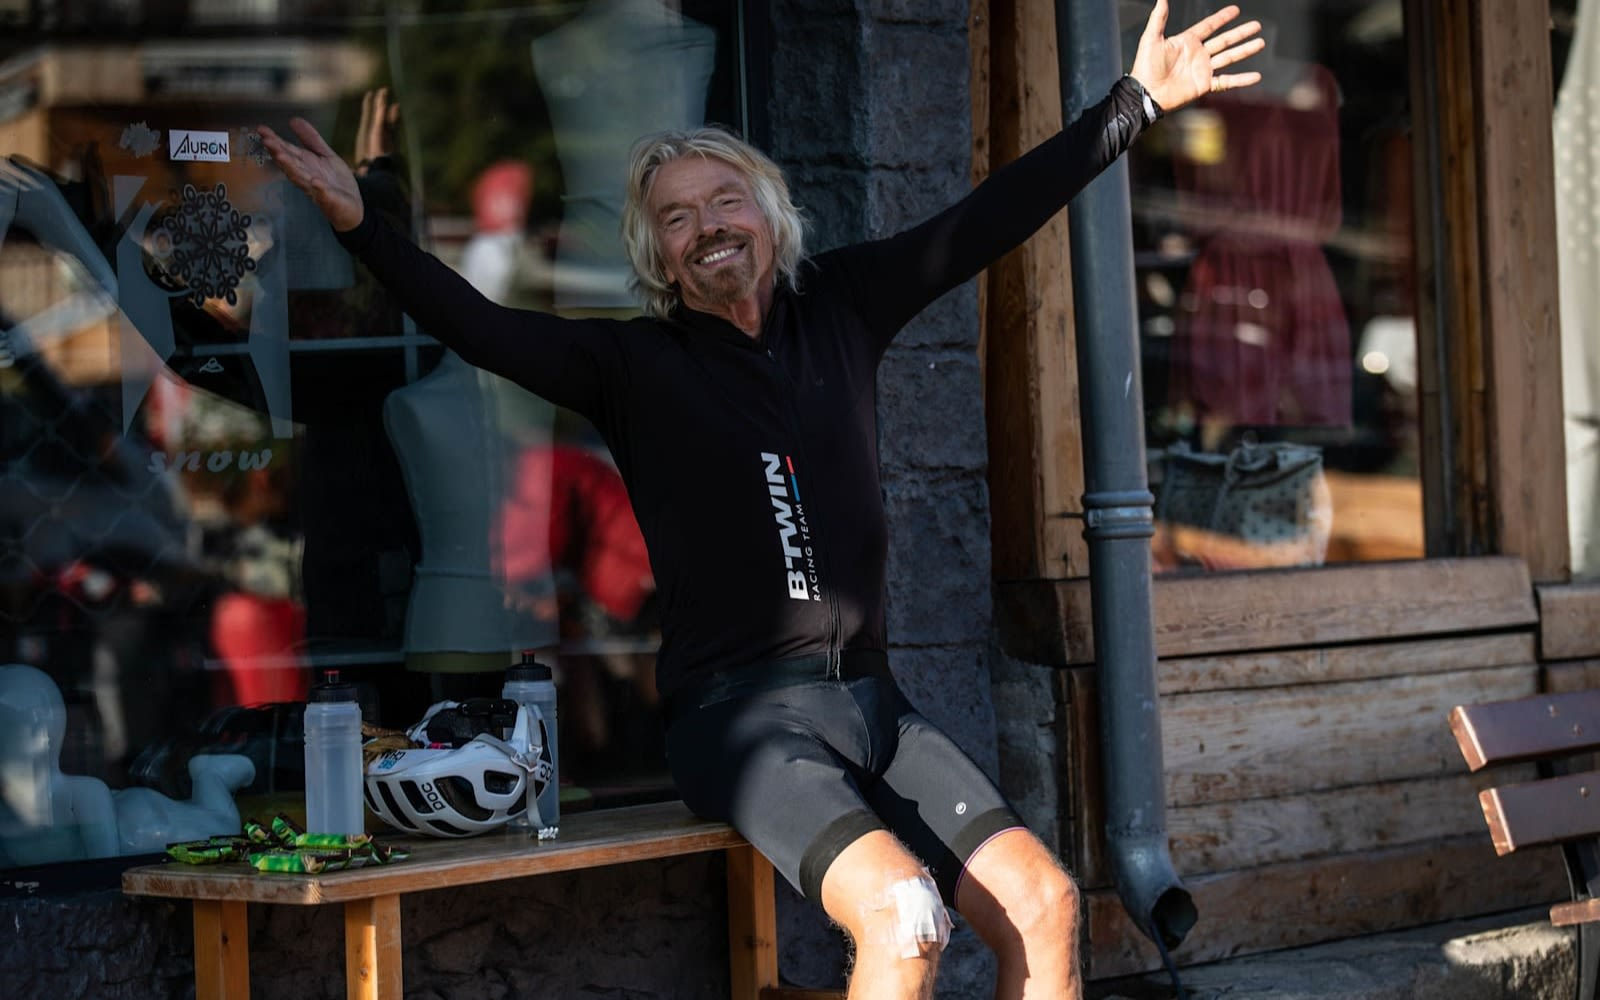 Richard Branson smiling with his arms in the air in cycling clothes